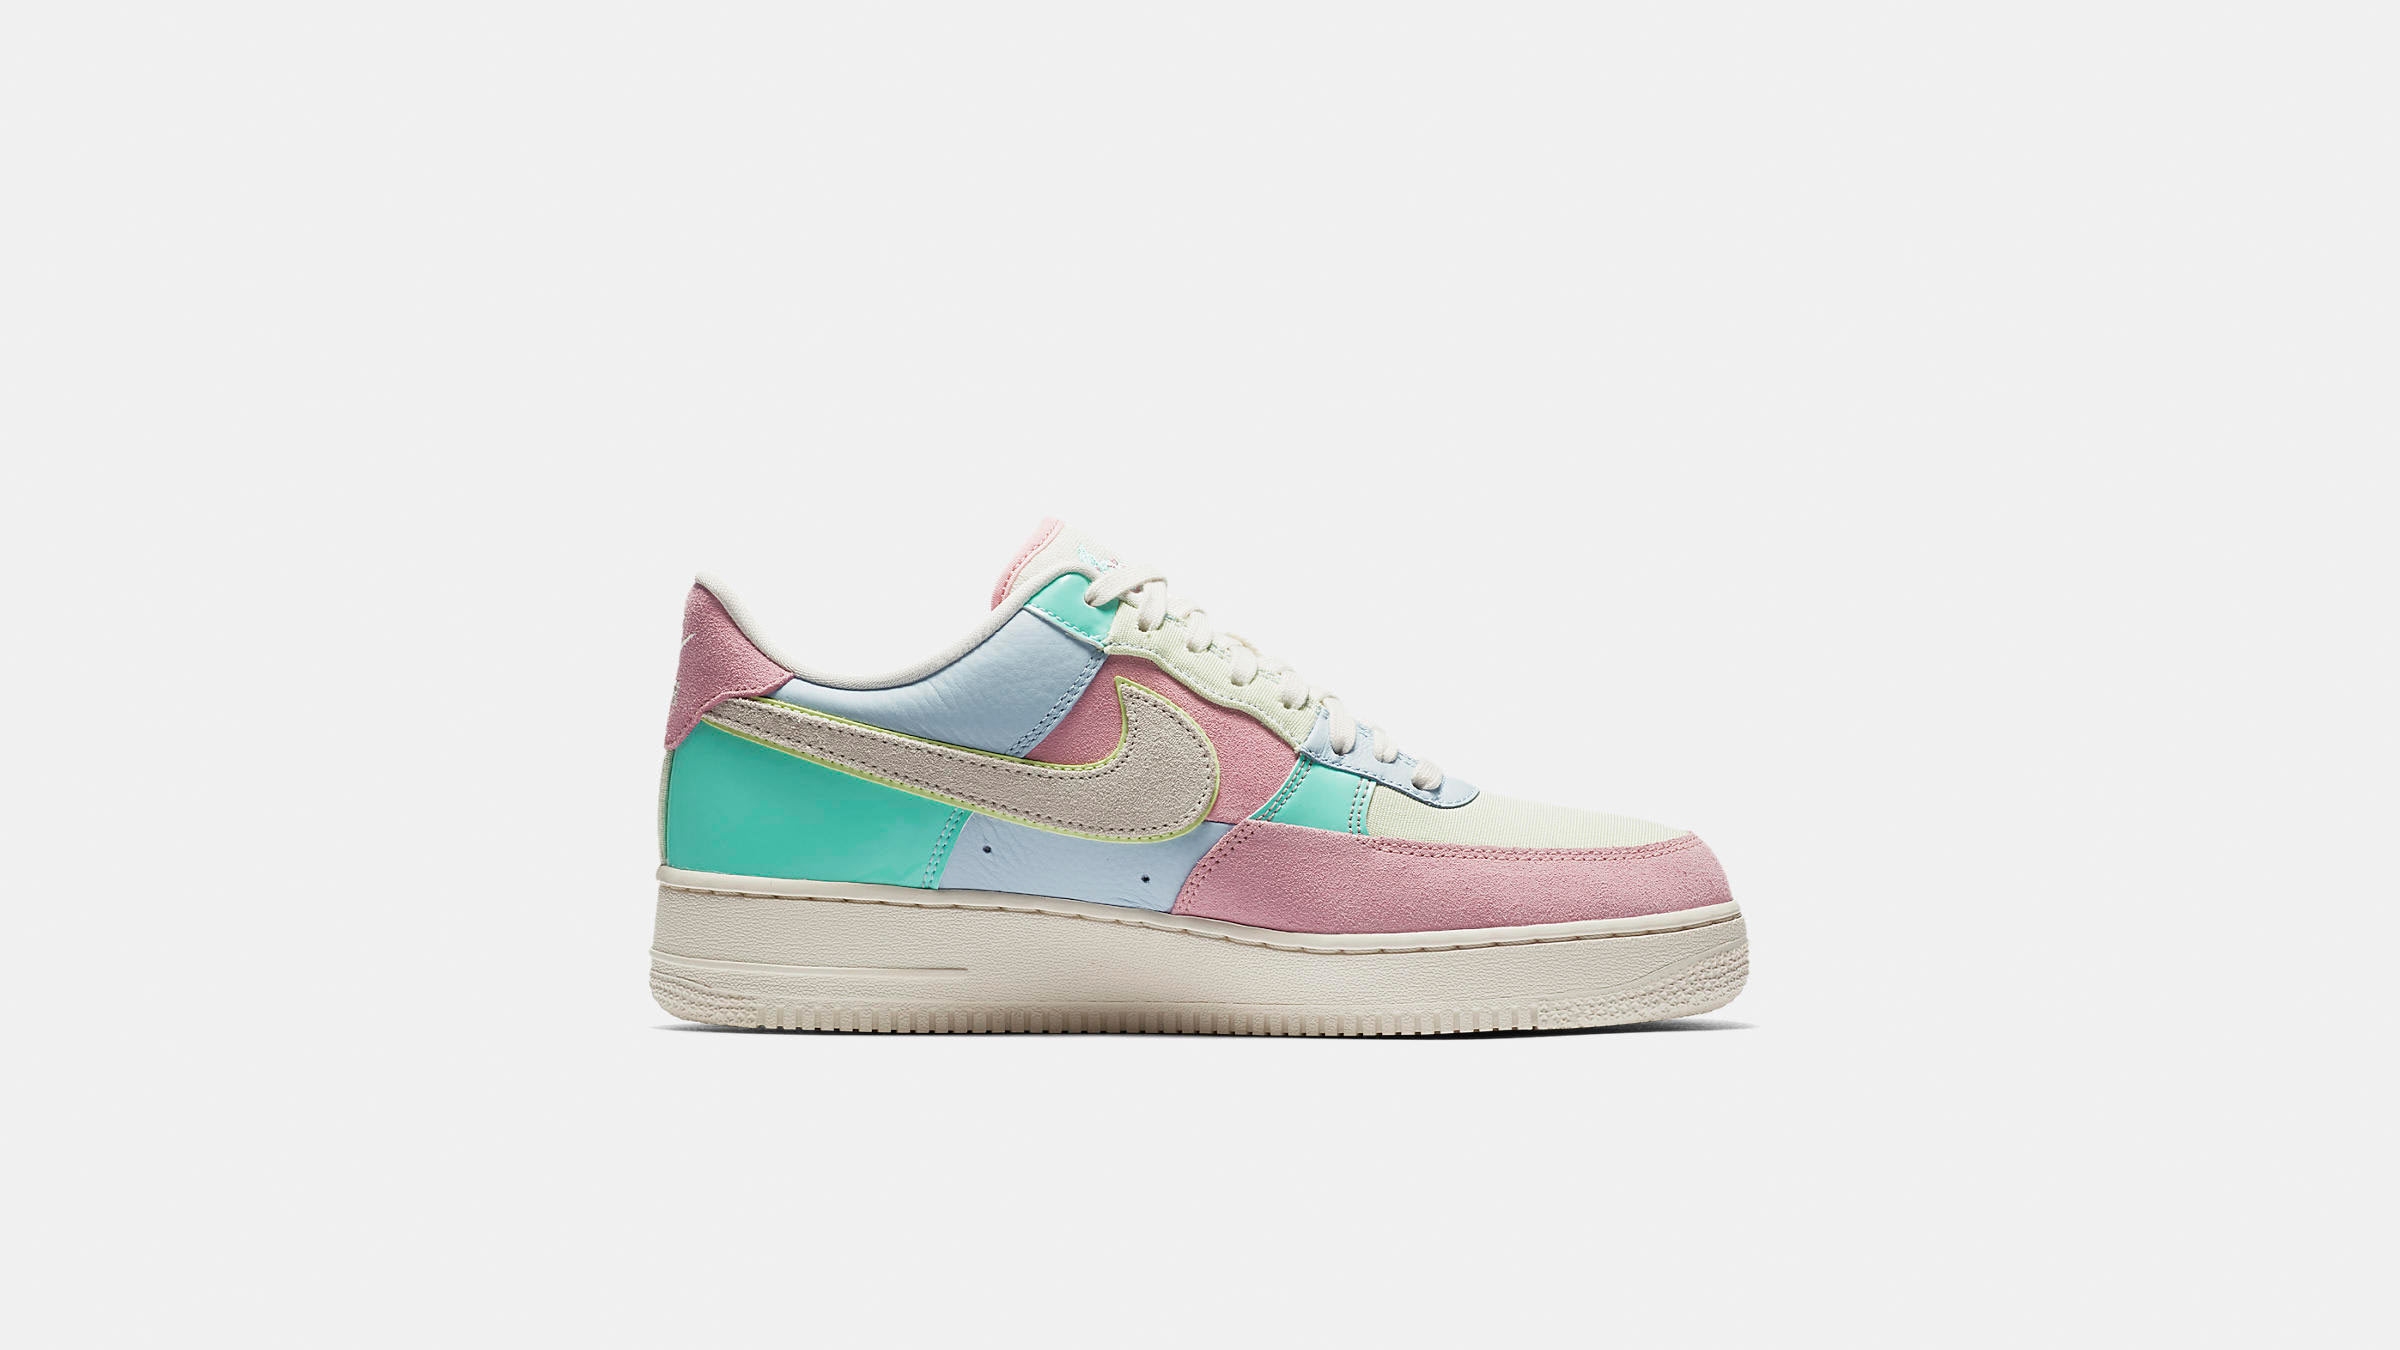 size 40 183e8 1feed Nike Air Force 1  07 QS. Ice Blue, Sail   Turquoise£115. bring ice-cream  tones into your spring wardrobe